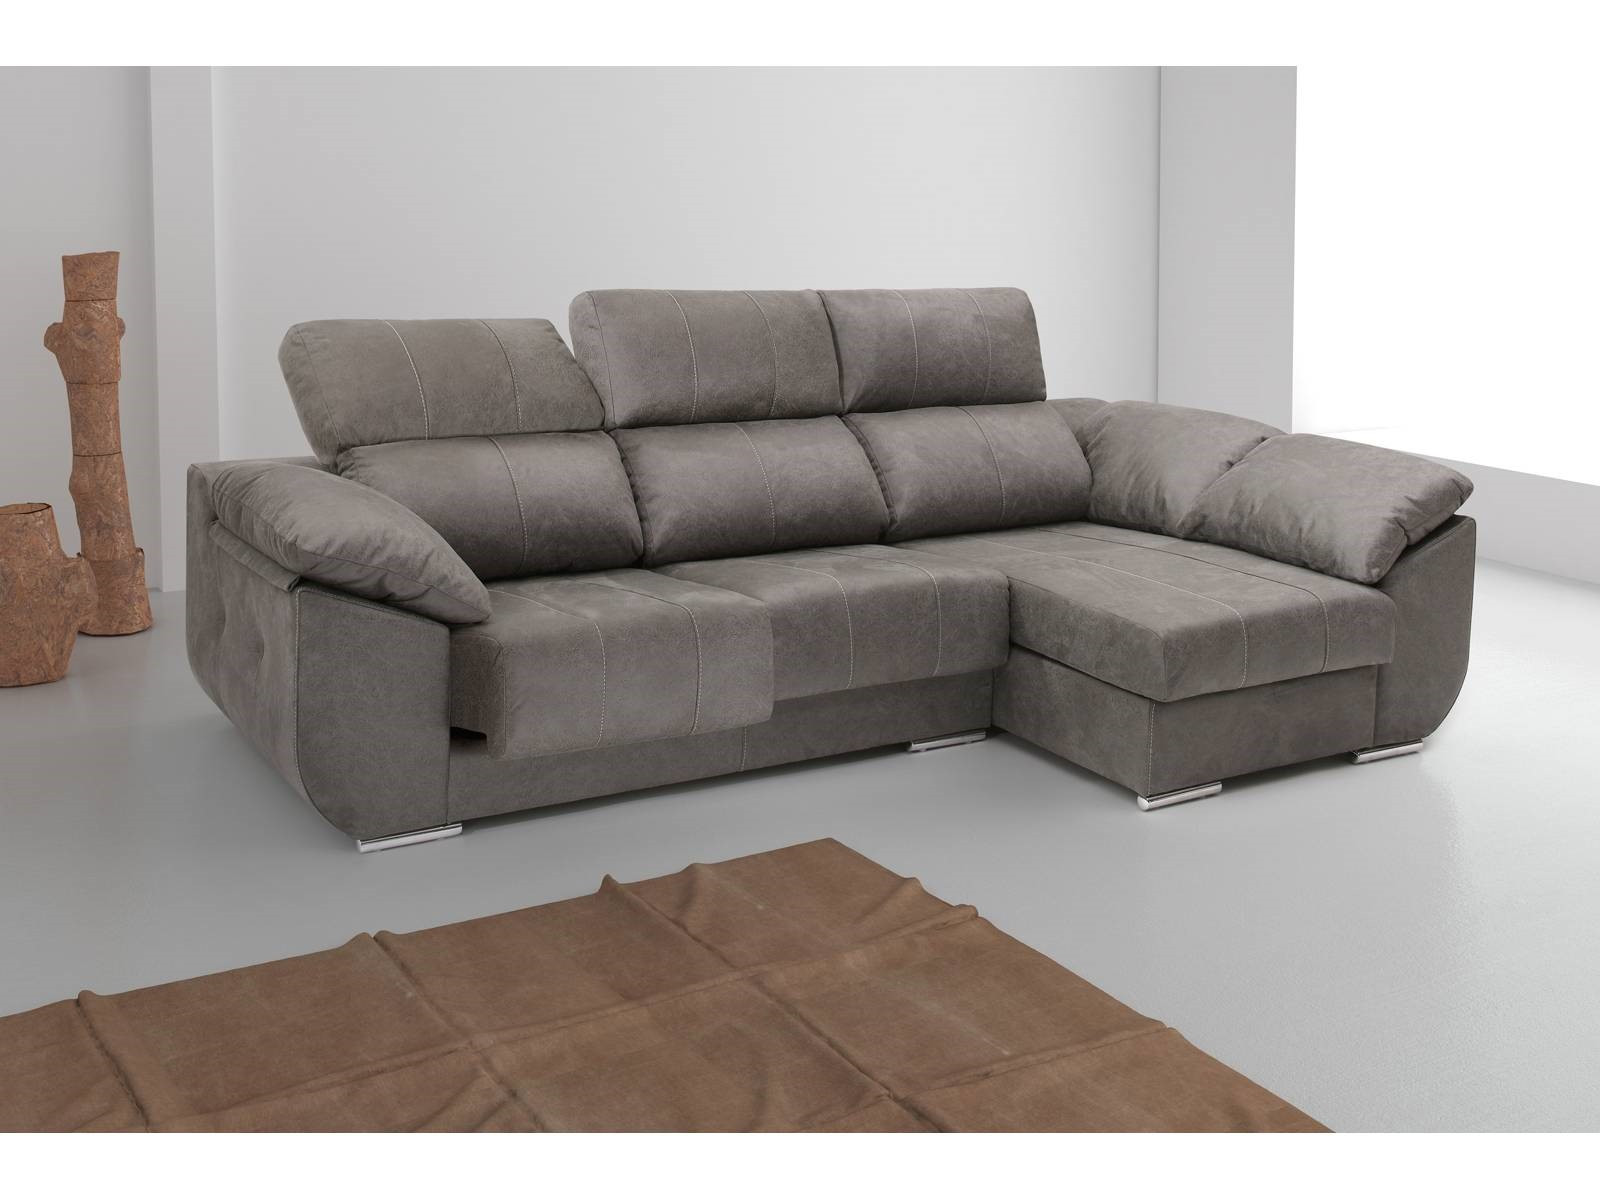 Sofa Chaise Longue 4 Plazas Contemporáneo sofá Mesmerizar De sofas Merkamueble Chaise Longue sofa Of 47  Único sofa Chaise Longue 4 Plazas